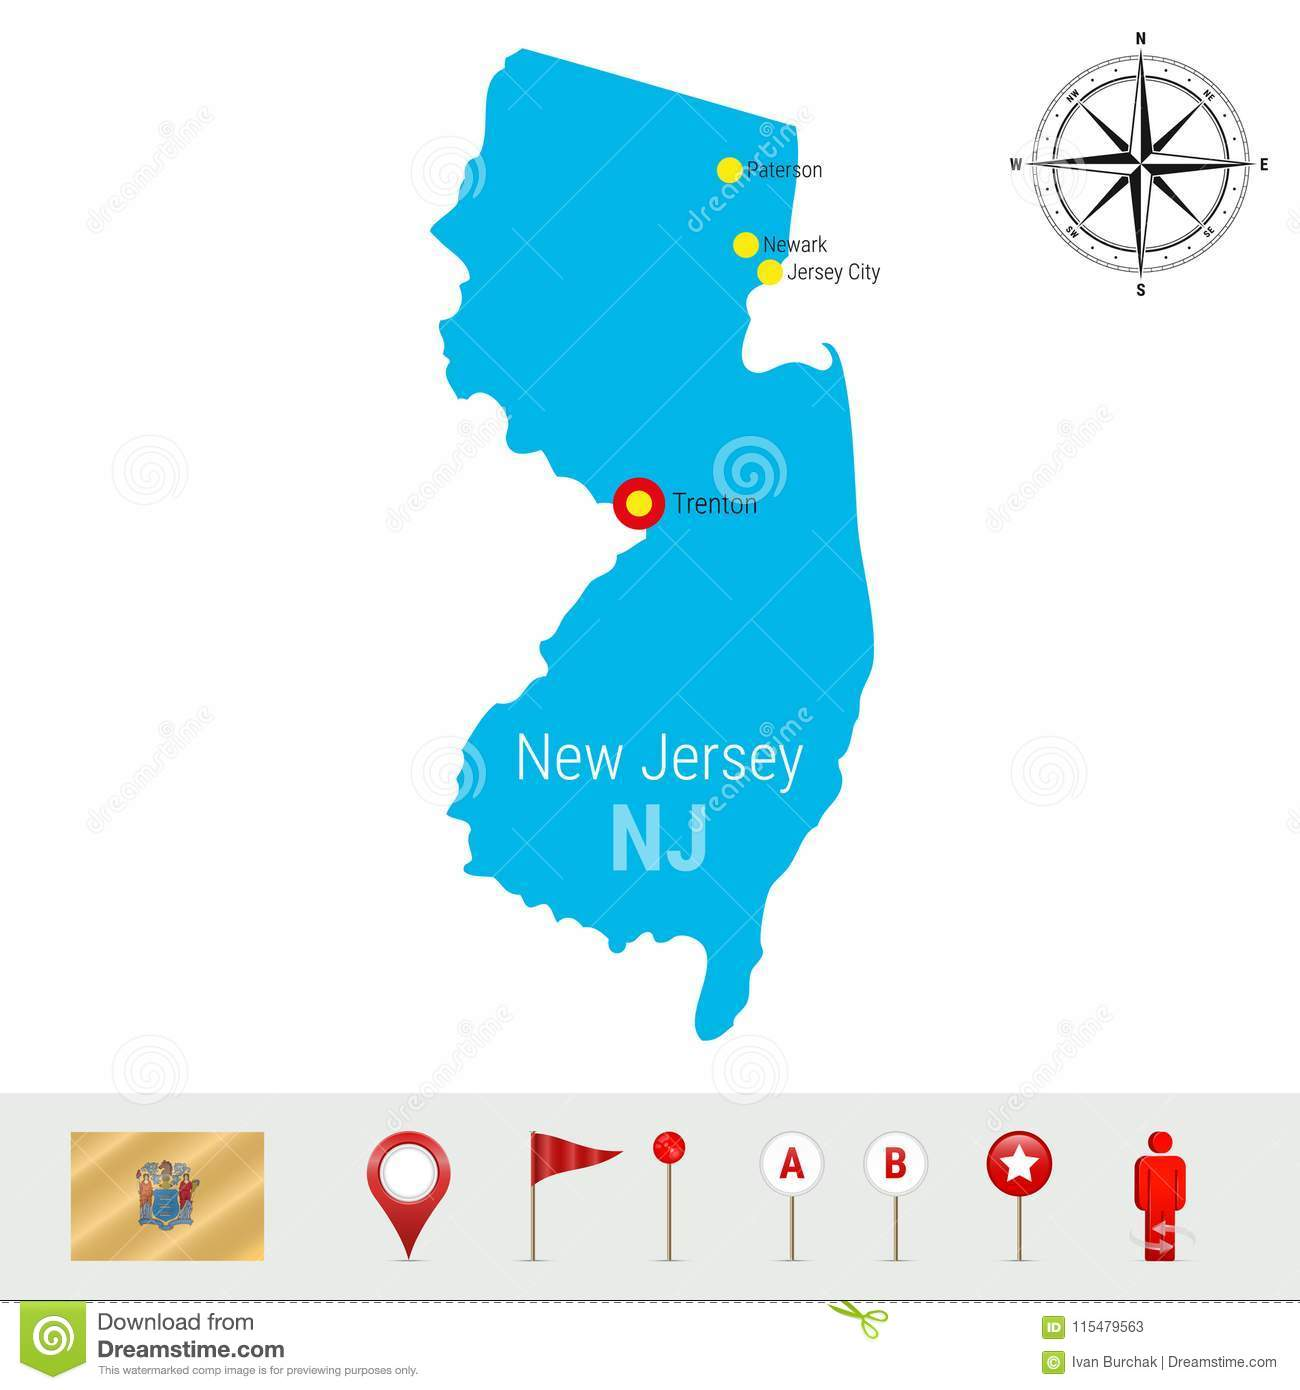 New Jersey Vector Map Isolated on White Background. Detailed Silhouette of New Jersey State. Official Flag of New Jersey